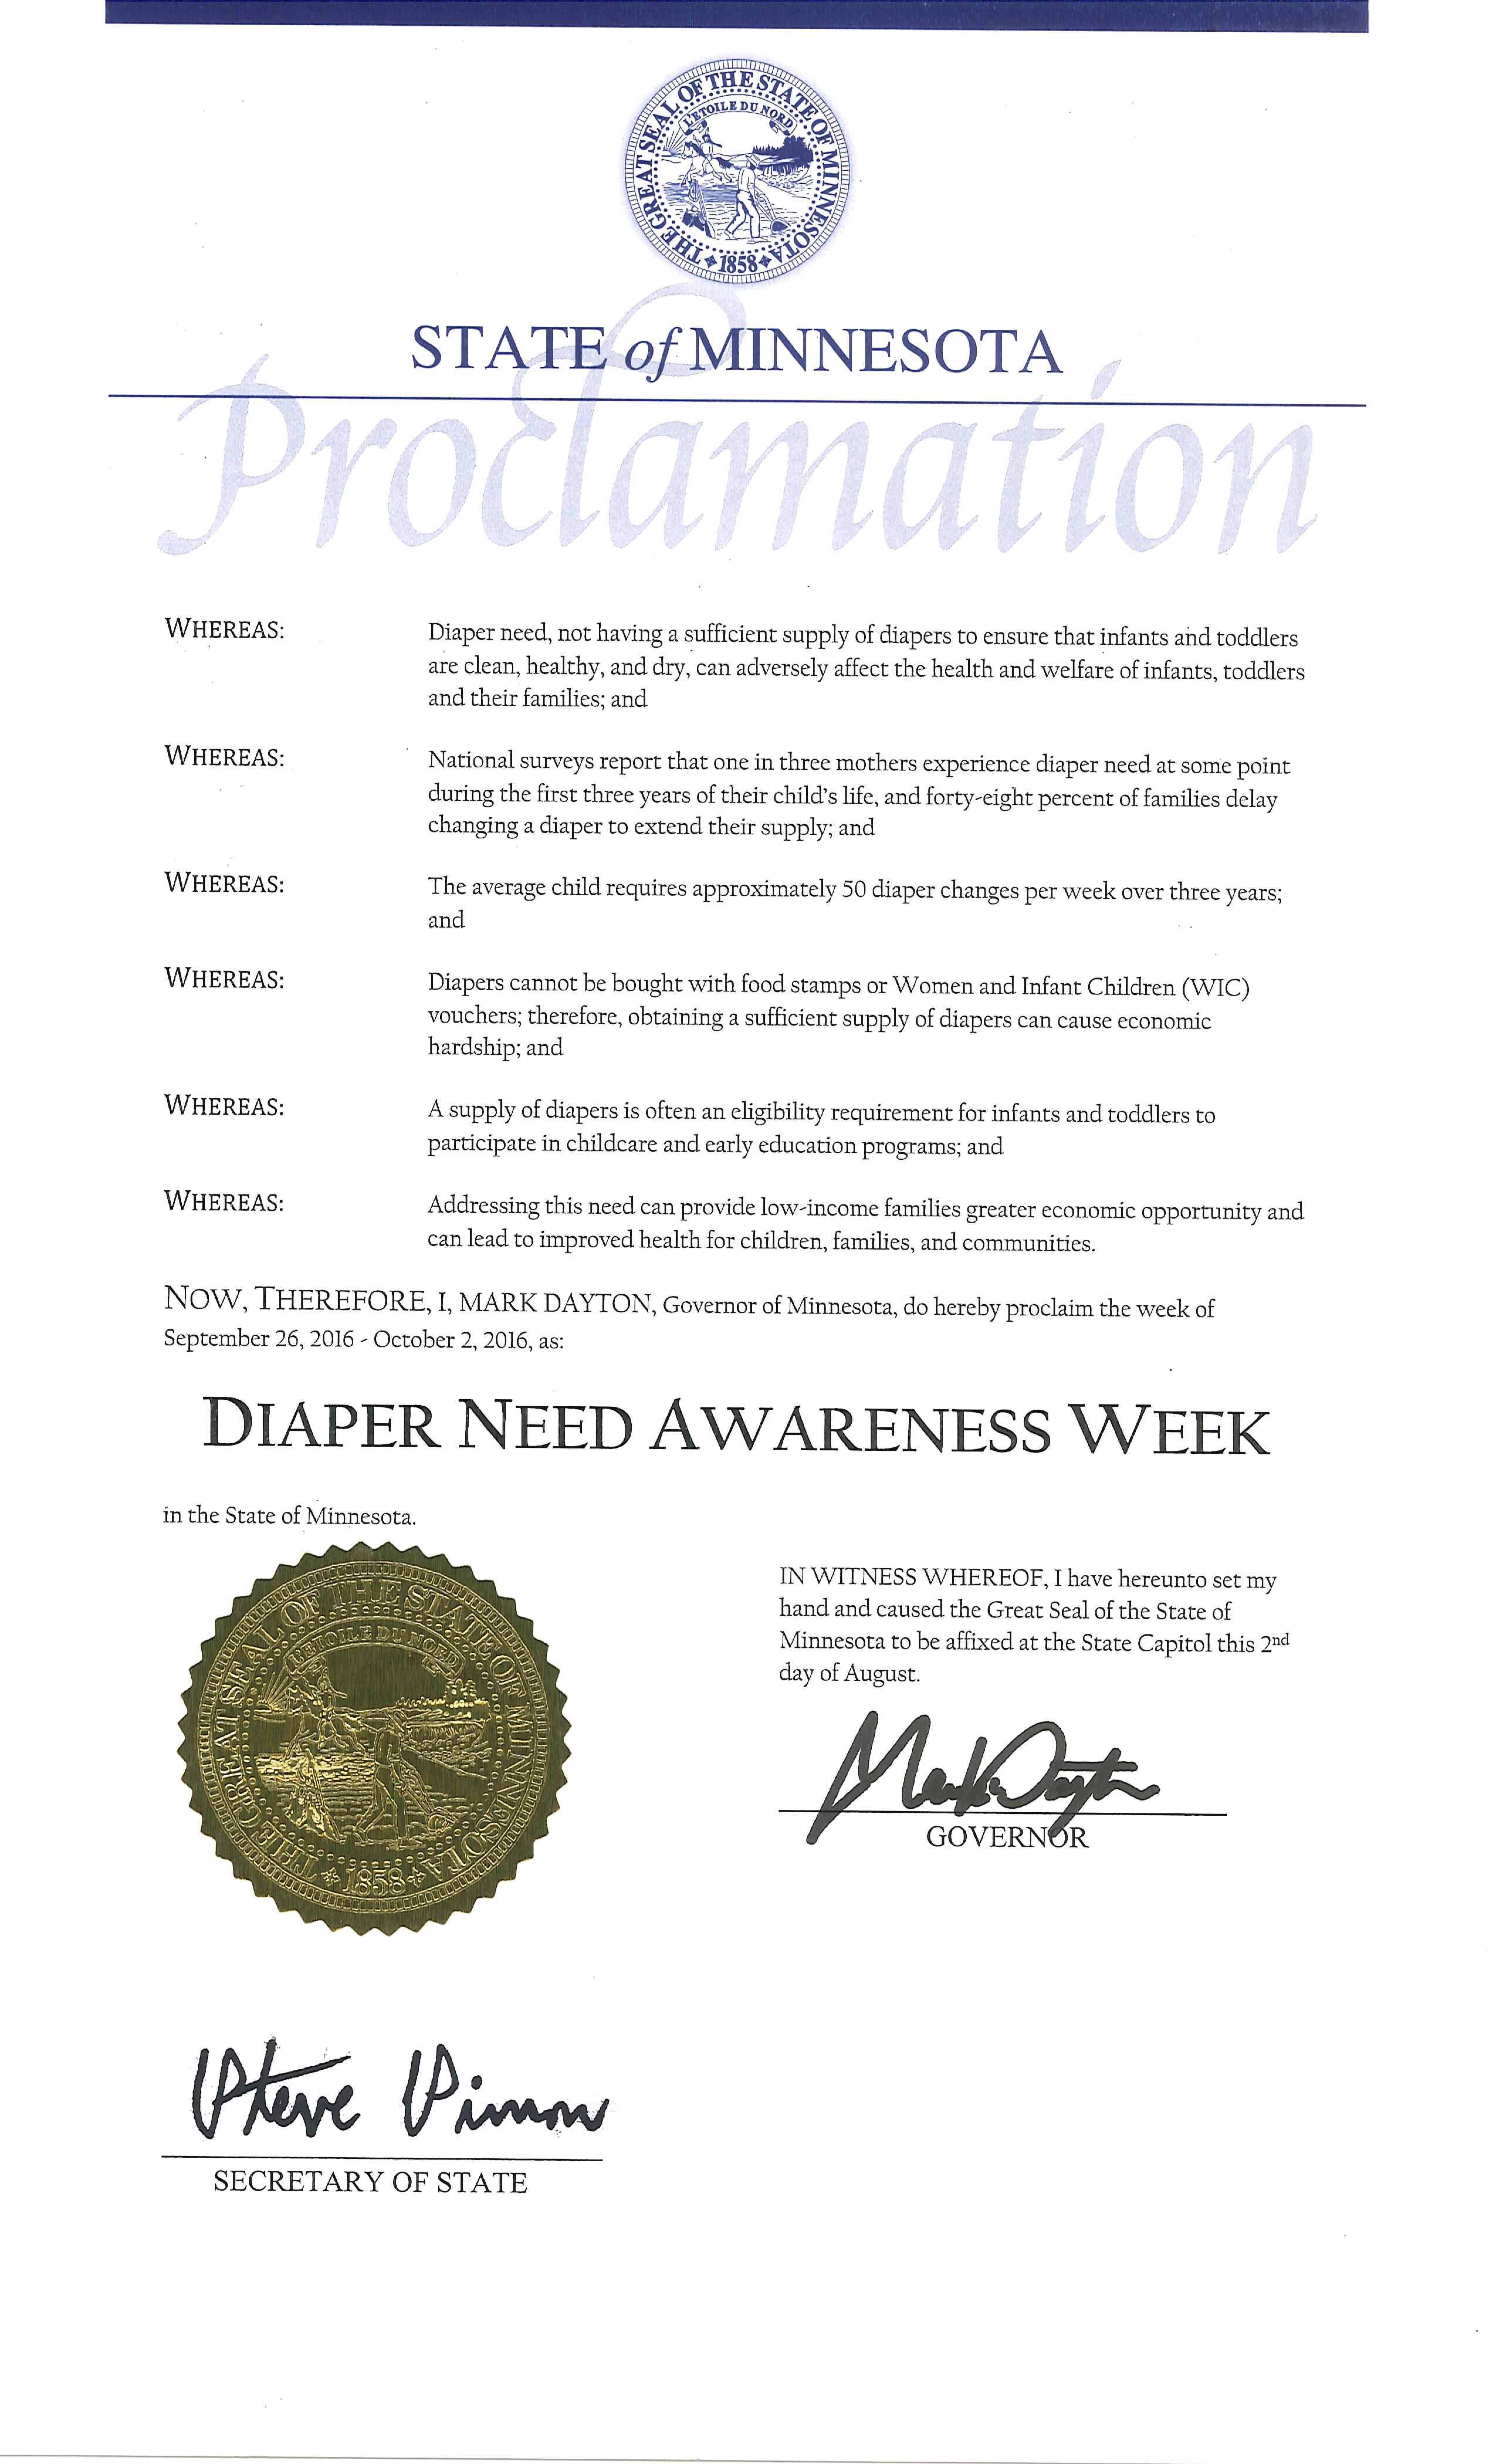 Minnesota Governor Mark Dayton's proclamation recognizing Diaper Need Awareness Week (Sept. 26 - Oct. 2, 2016) #DiaperNeed www.diaperneed.org